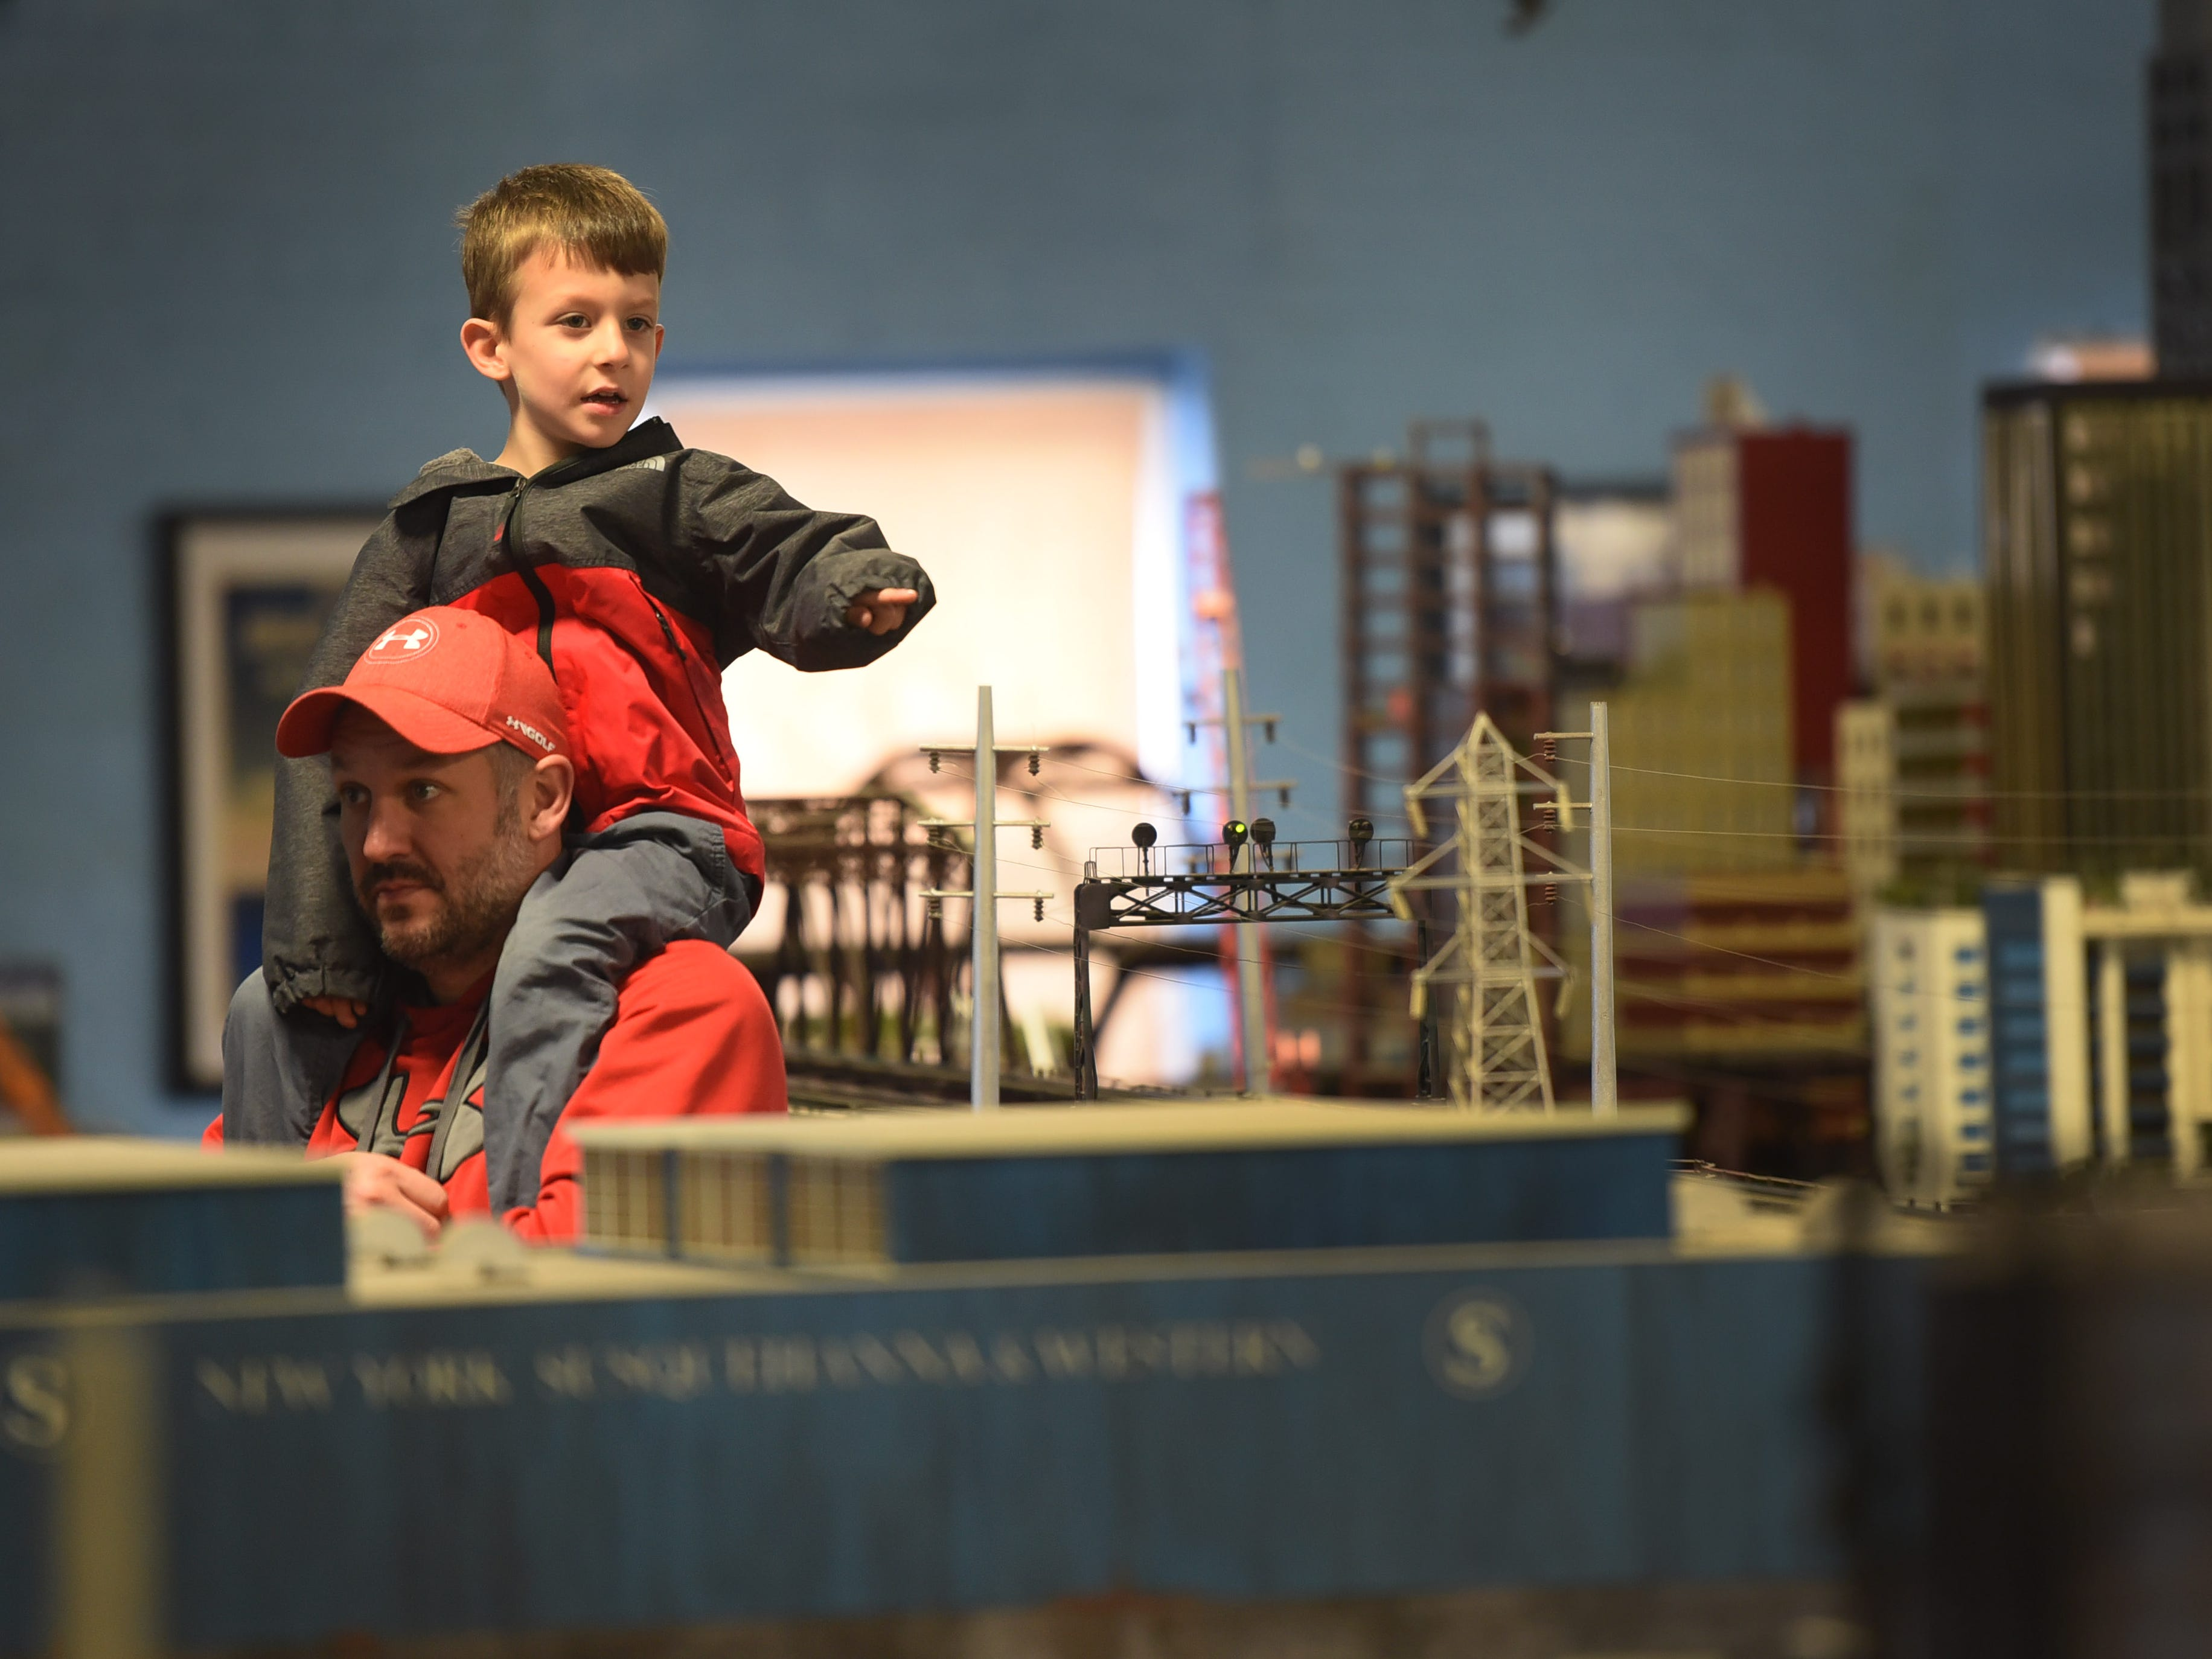 Four-year-old Grady McKee of Glen Rock, thanks mainly to his father Ryan, has a great perch to see the massive model train layout in Paterson on Oct. 28. The show was held by the NJ Hi-Railers Club.